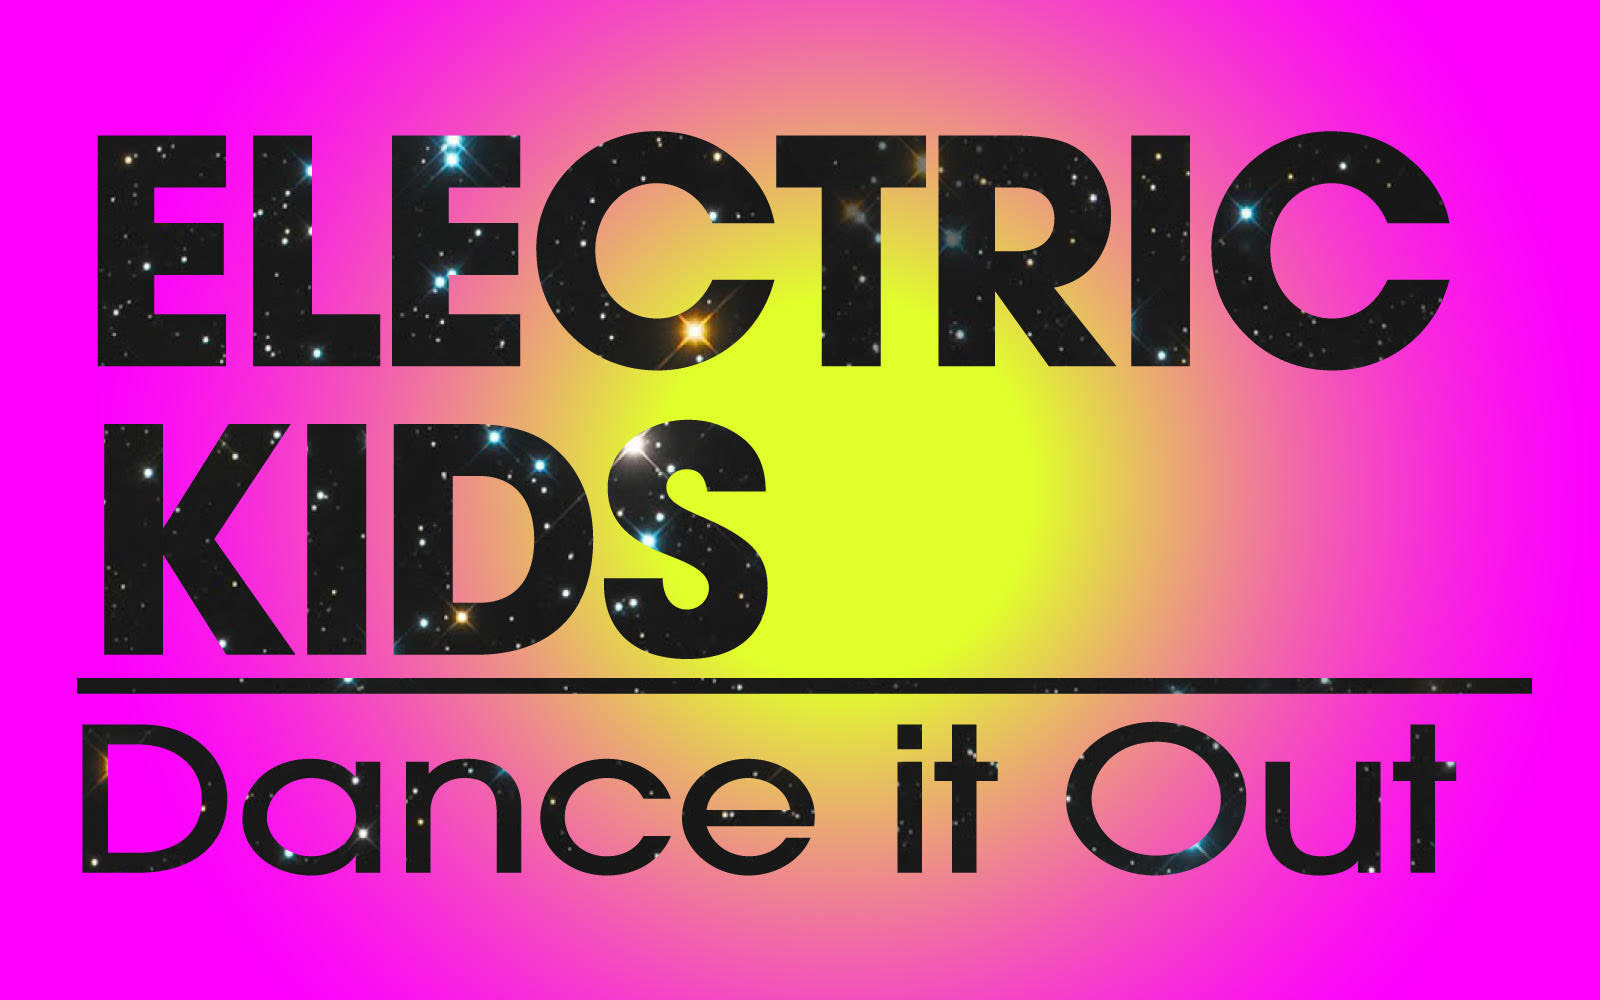 ELECTRIC.KIDS.DANCE_IT _OUT_2021.BODYELECTRICDANCESTUDIOS